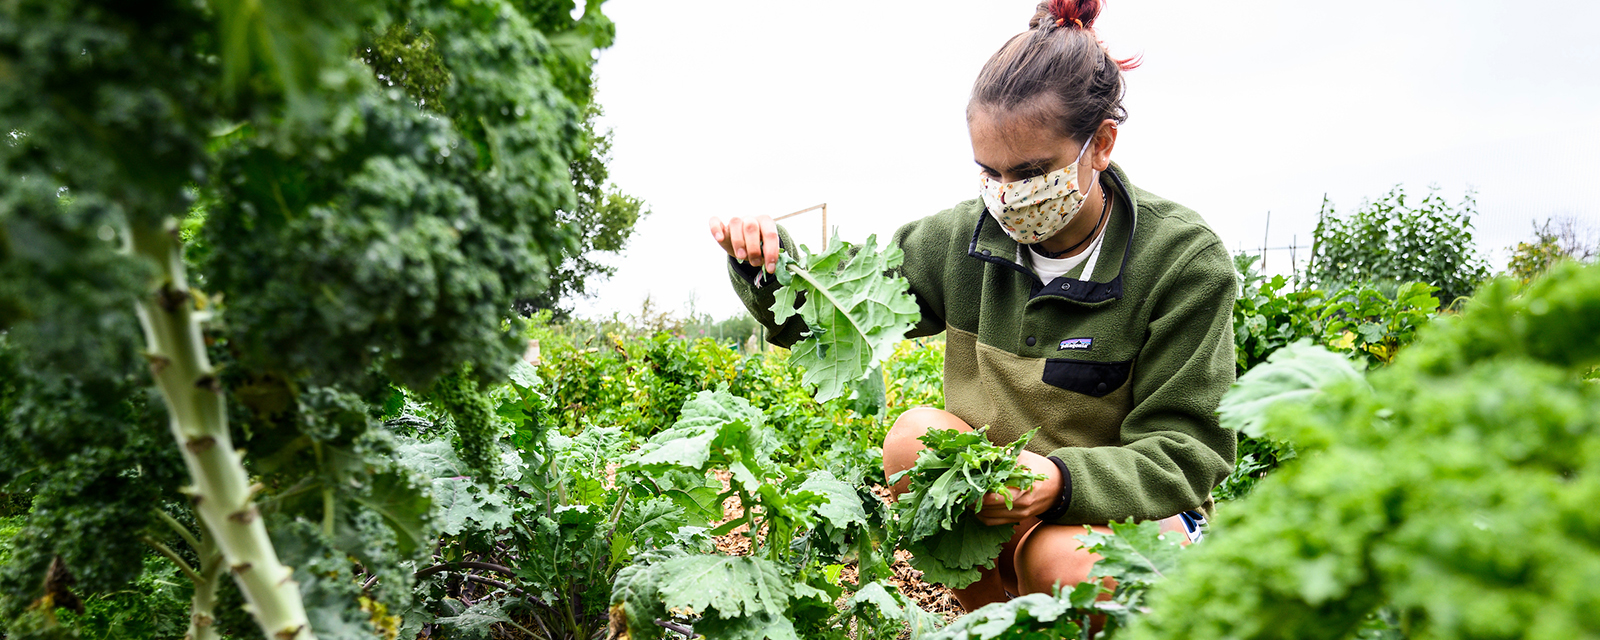 Undergraduate student Maggie Marshall picks kale as volunteers from UW-Madison's F.H. King Students for Sustainable Agriculture harvest fresh produce and vegetables from their farm plot at Eagle Heights Community Garden